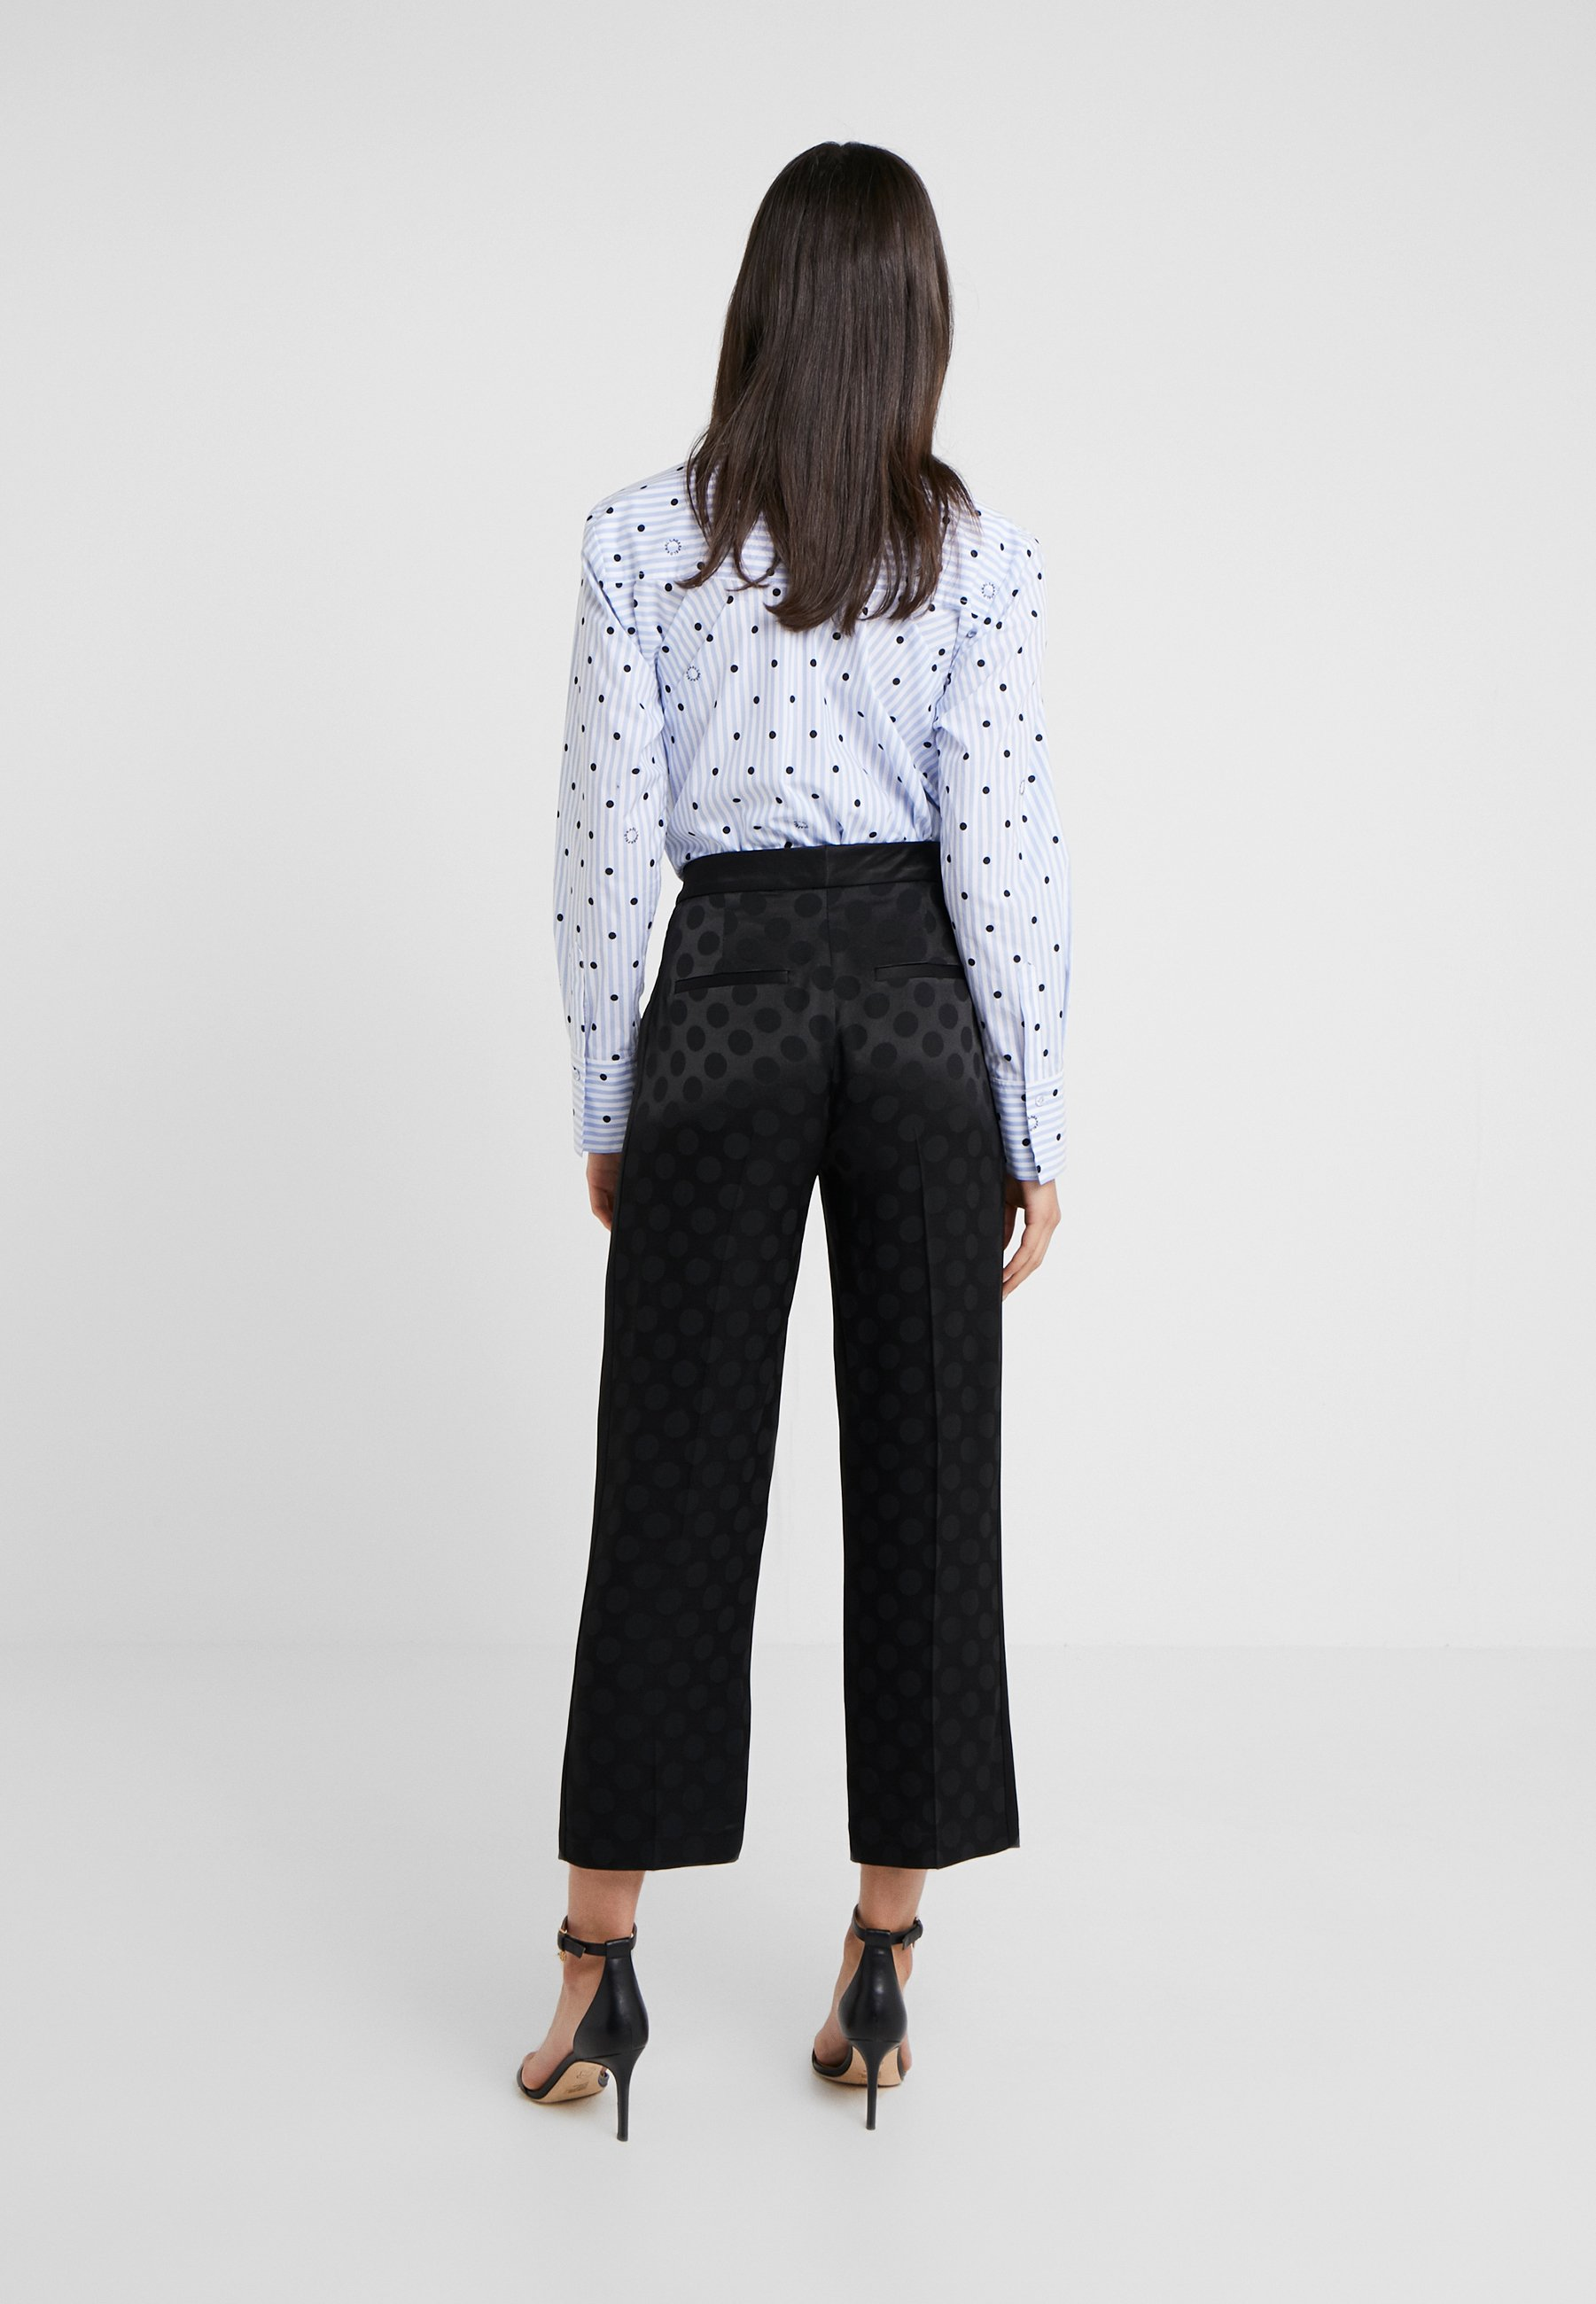 Black Tailored Lagerfeld Karl Classique PantsPantalon drxshQCt